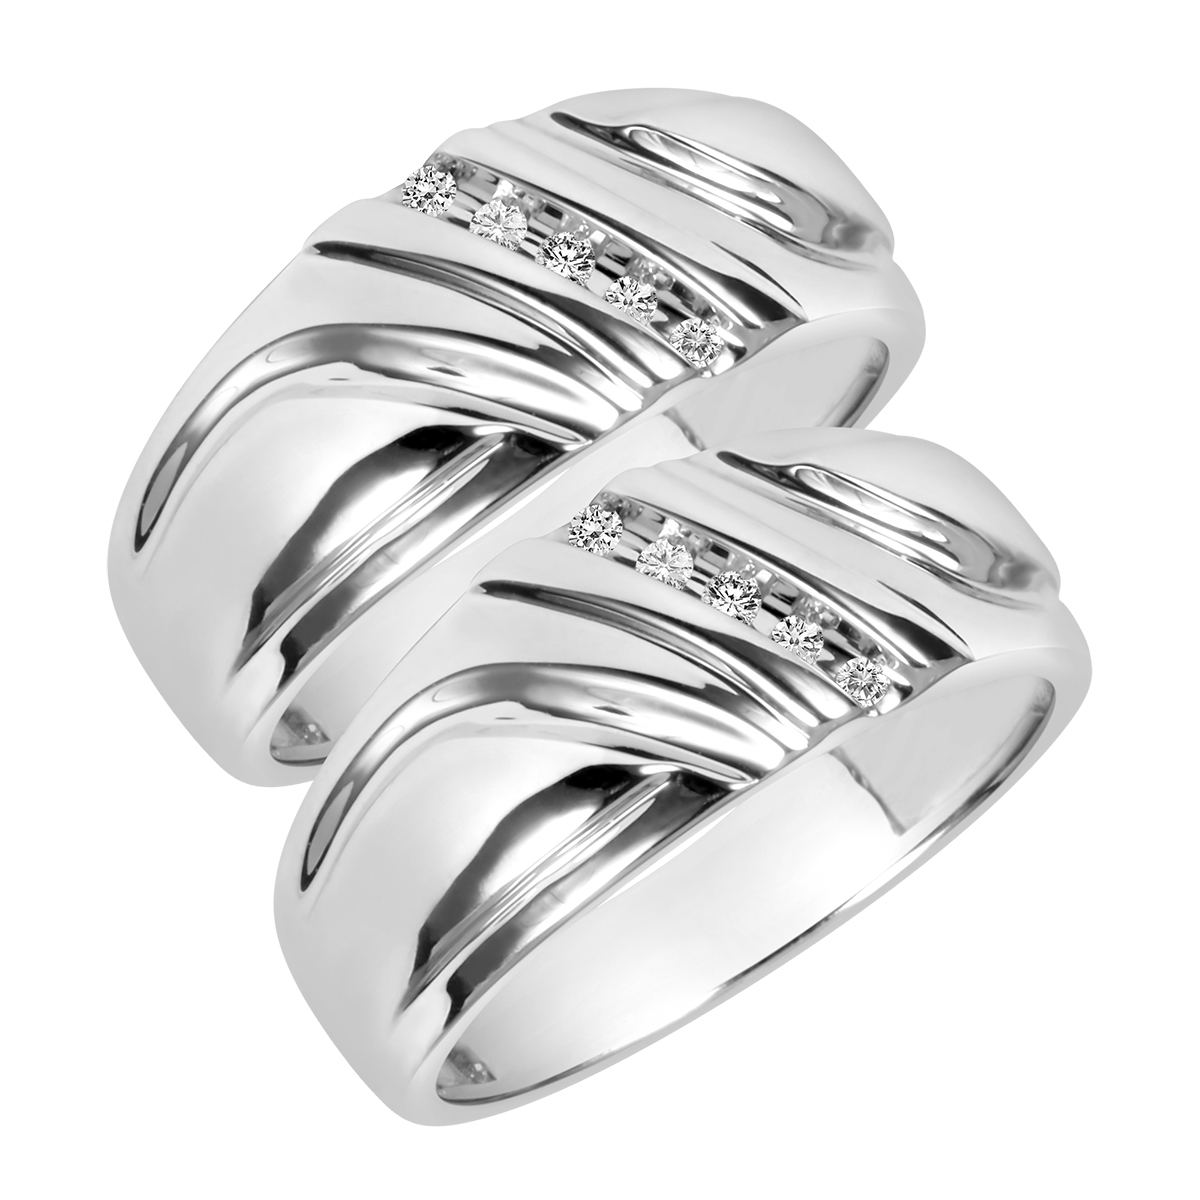 1/8 Carat T.W. Round Cut Mens  Same Sex Wedding Band Set 10K White Gold- Size 8